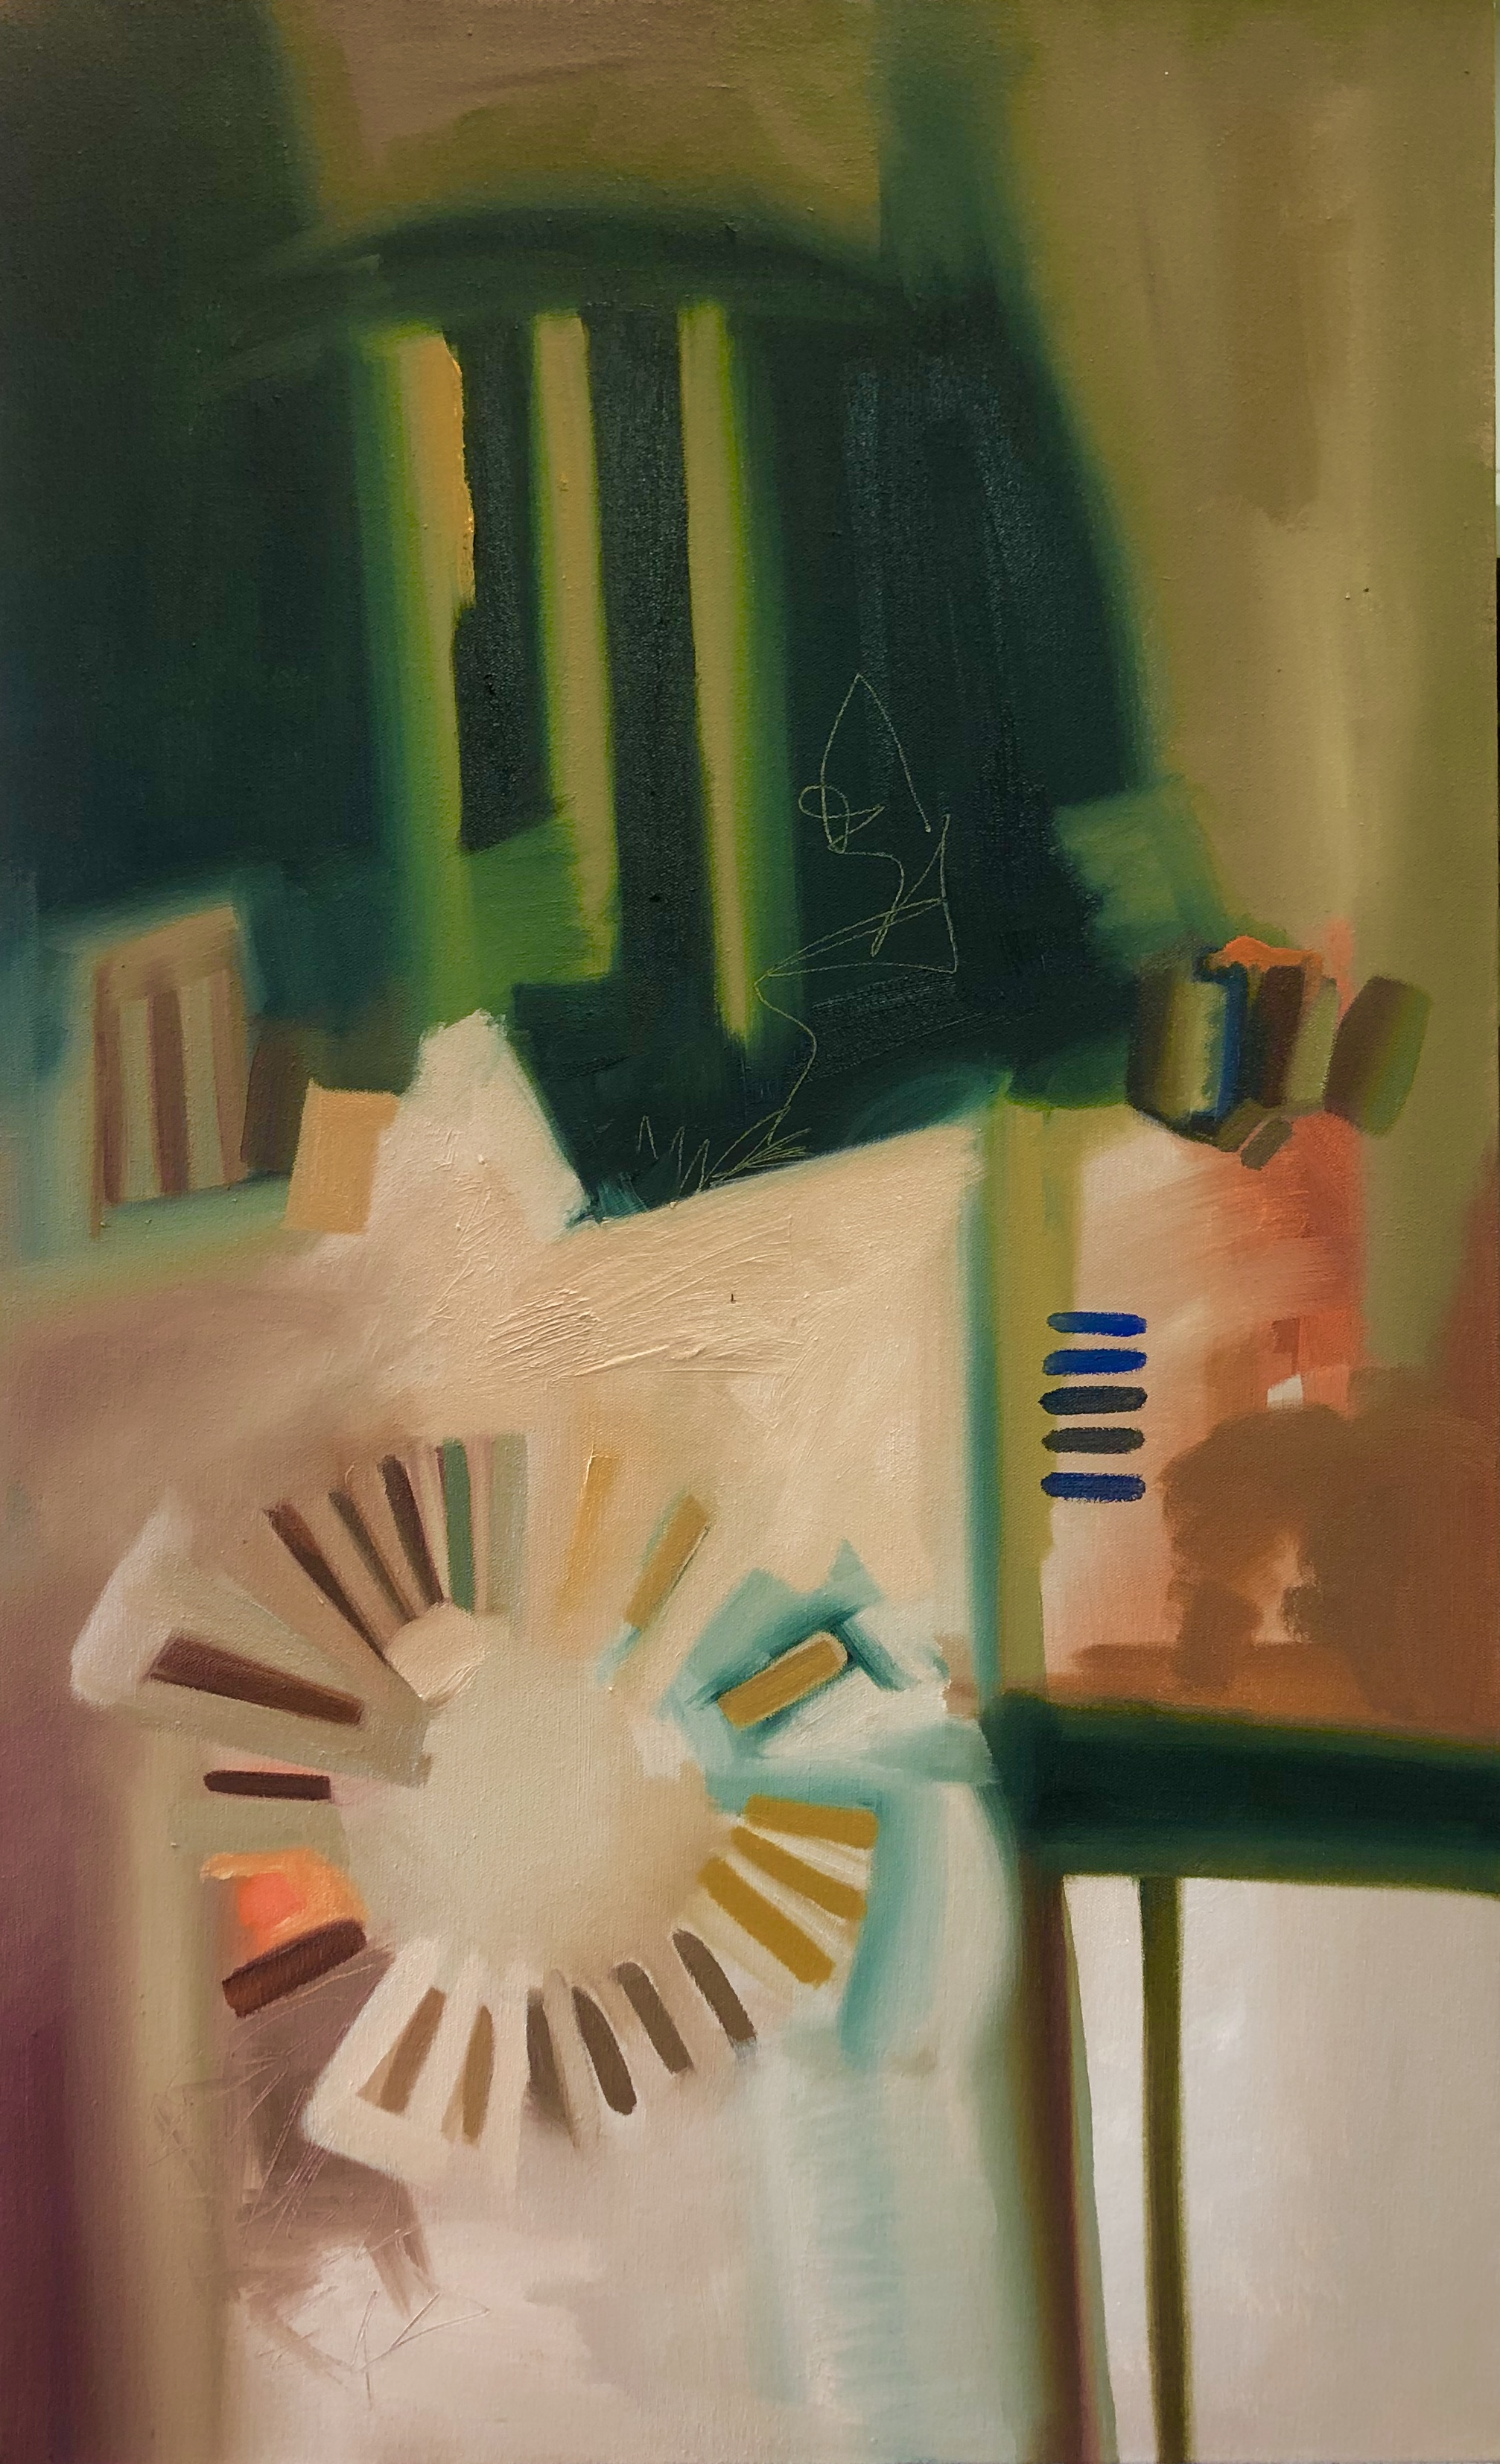 Luminescent,  2019. Oil on Canvas. 30 x 20 in. NFS